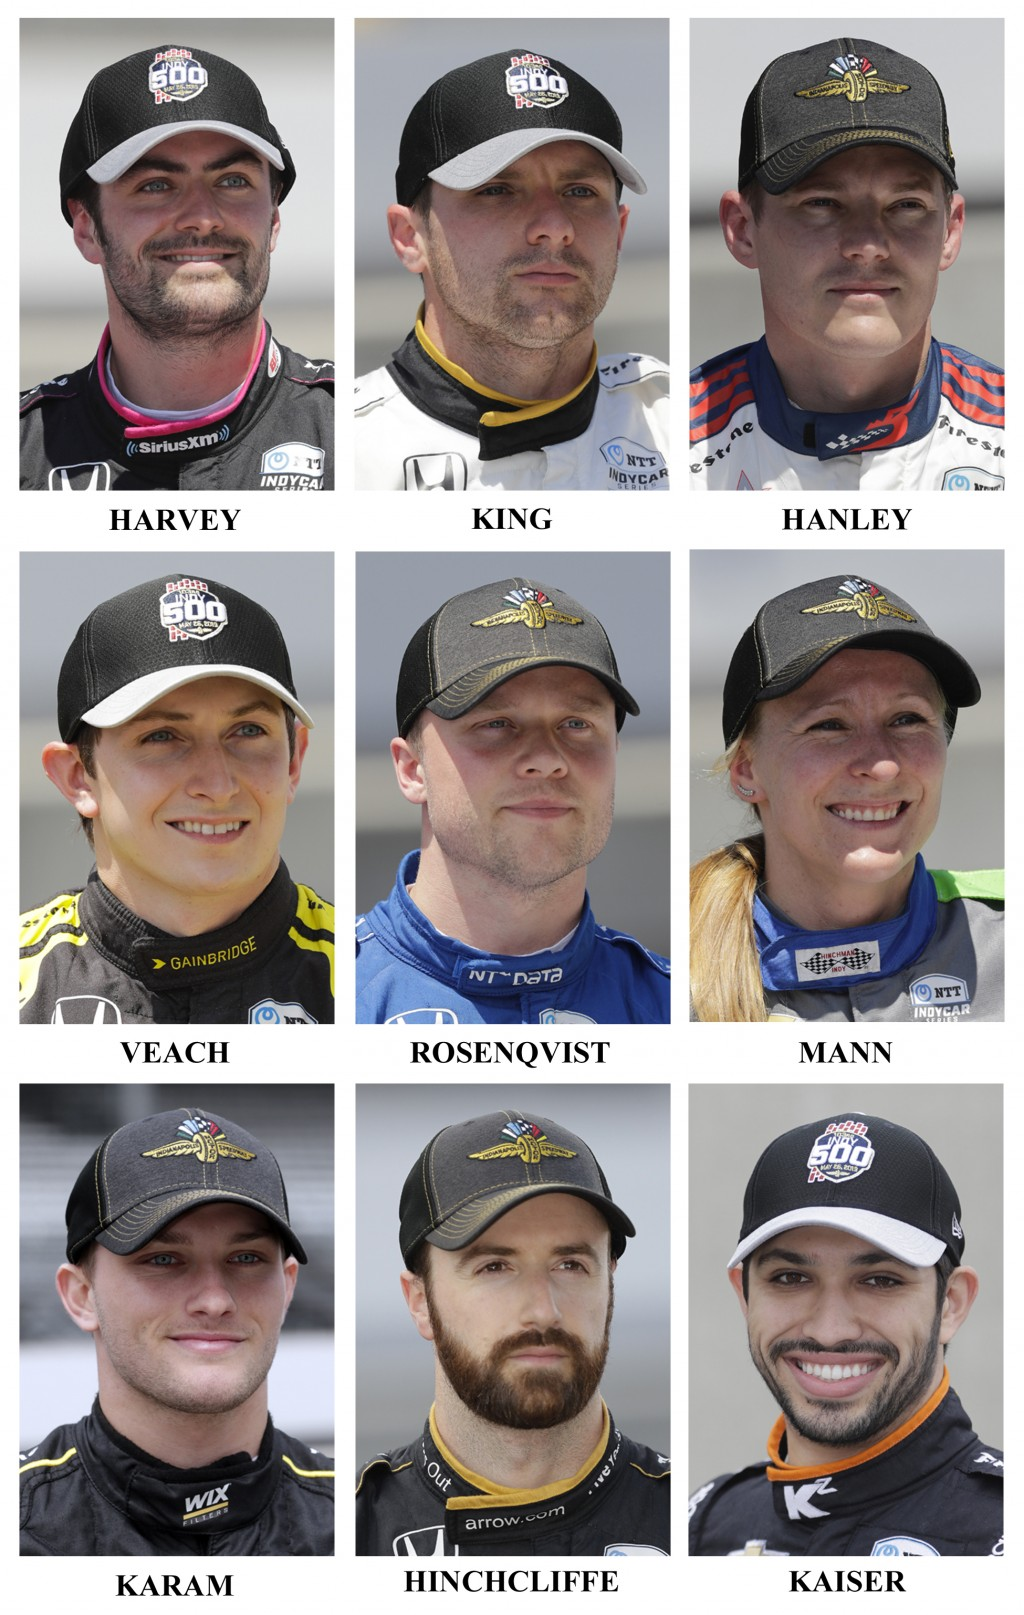 Drivers in the starting field for the May 26 Indianapolis 500 IndyCar auto race are shown after they qualified at the Indianapolis Motor Speedway in I